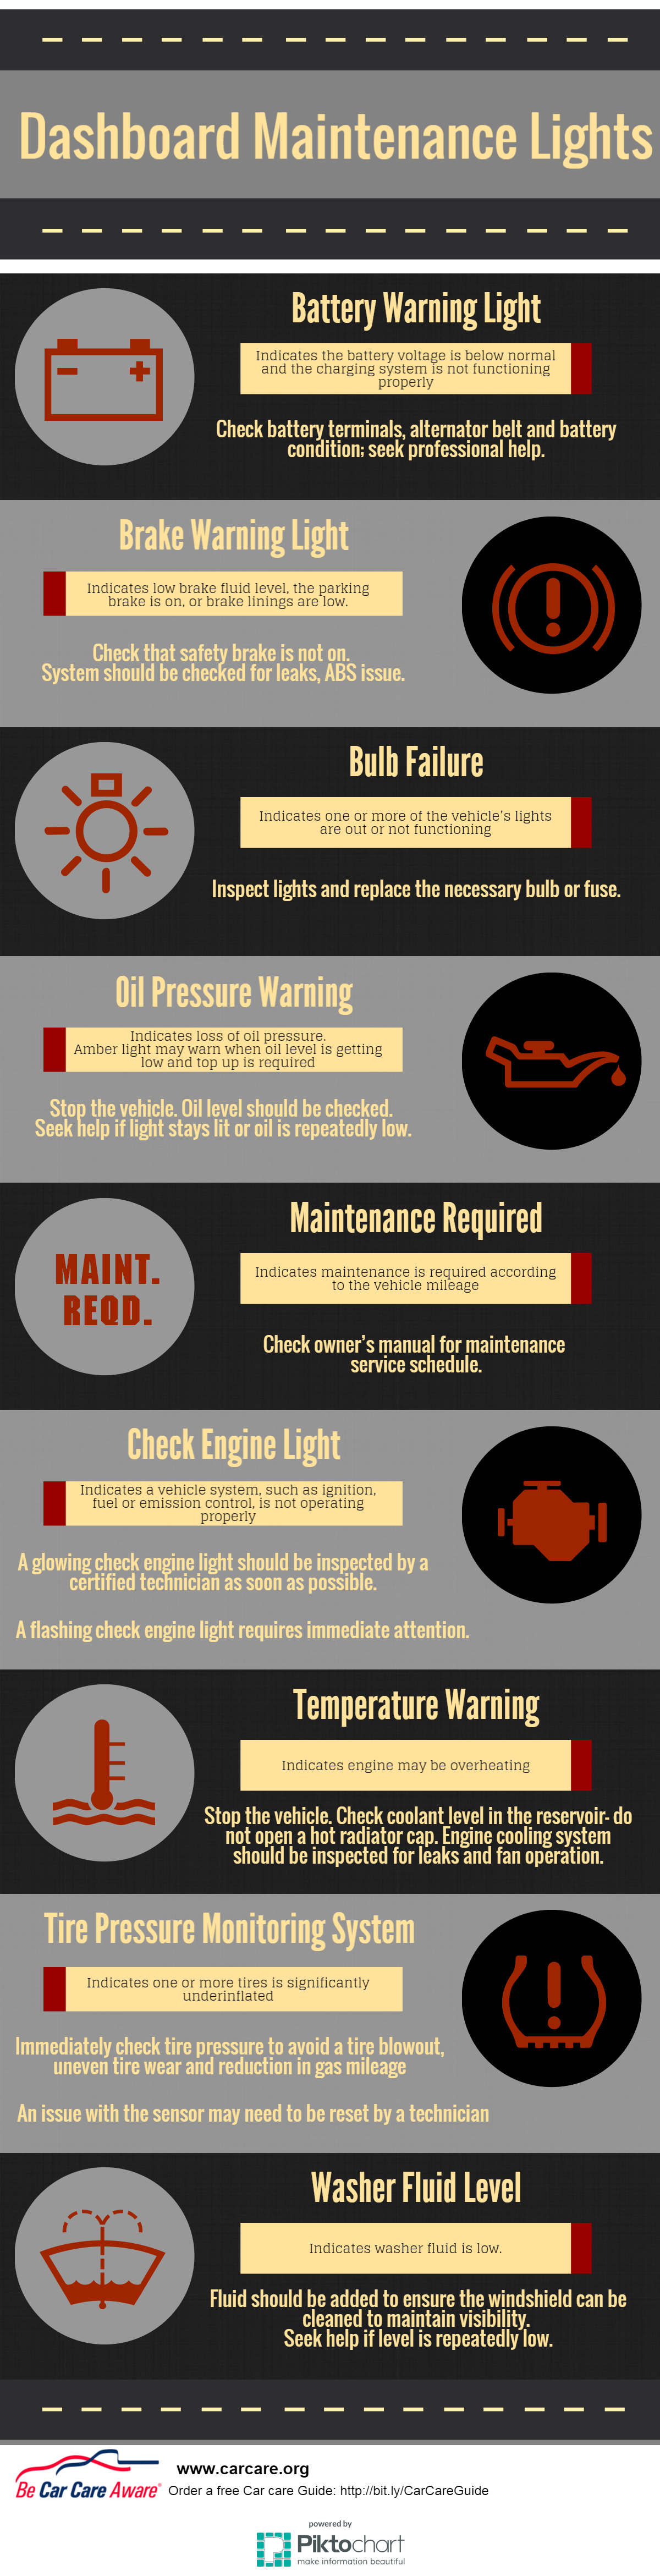 What is That Dashboard Light Telling You? - Jun 30, 2015